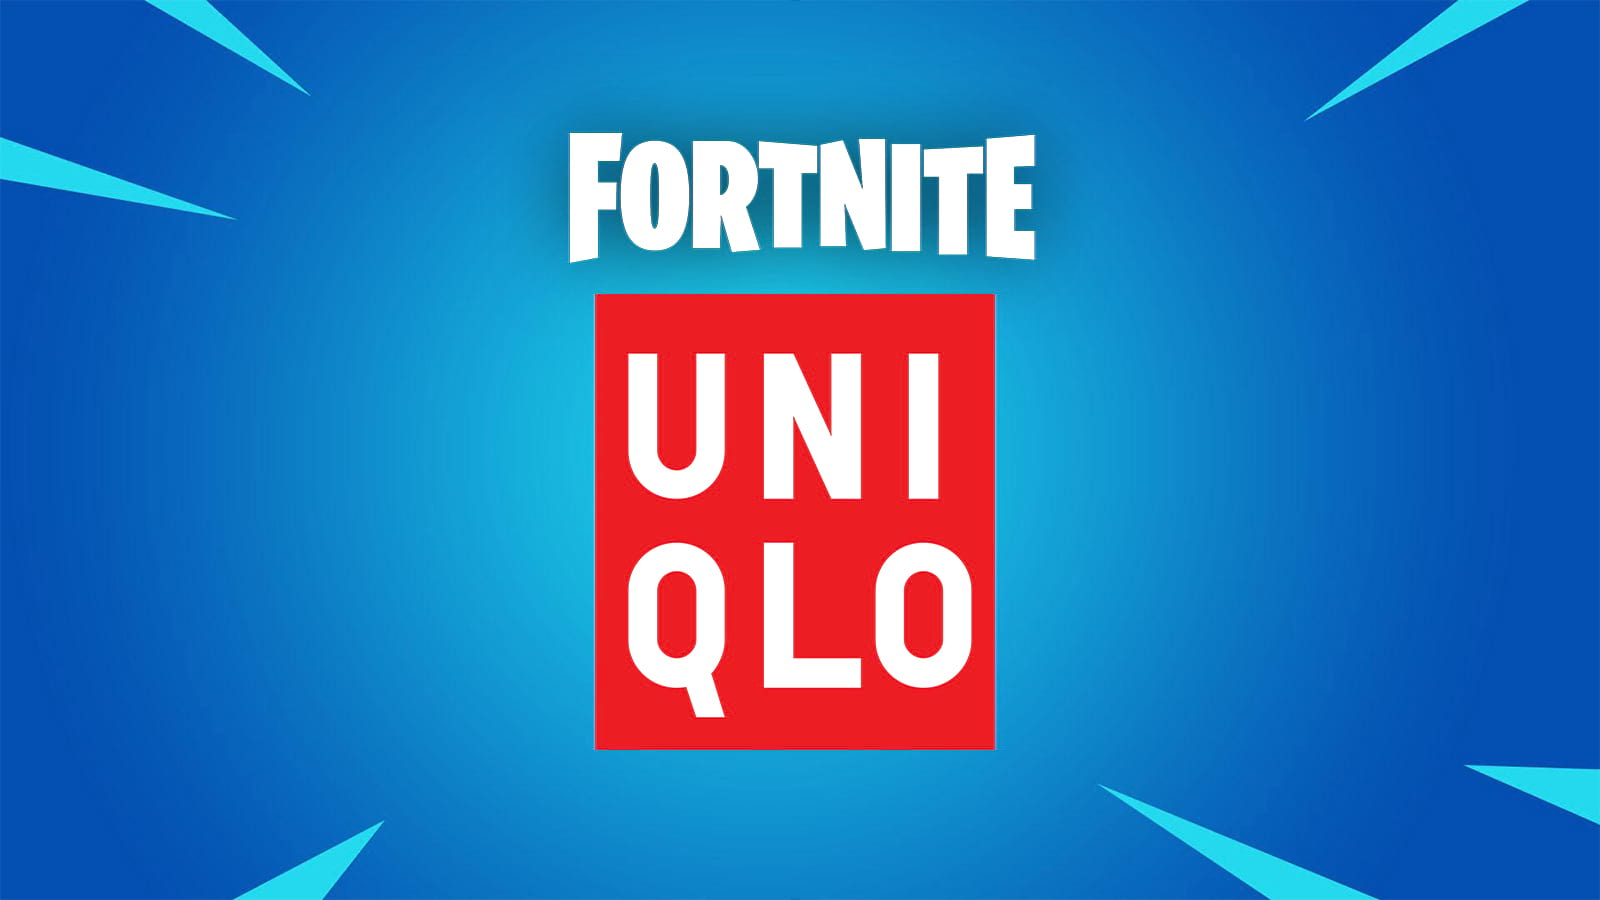 Fortnite UNIQLO